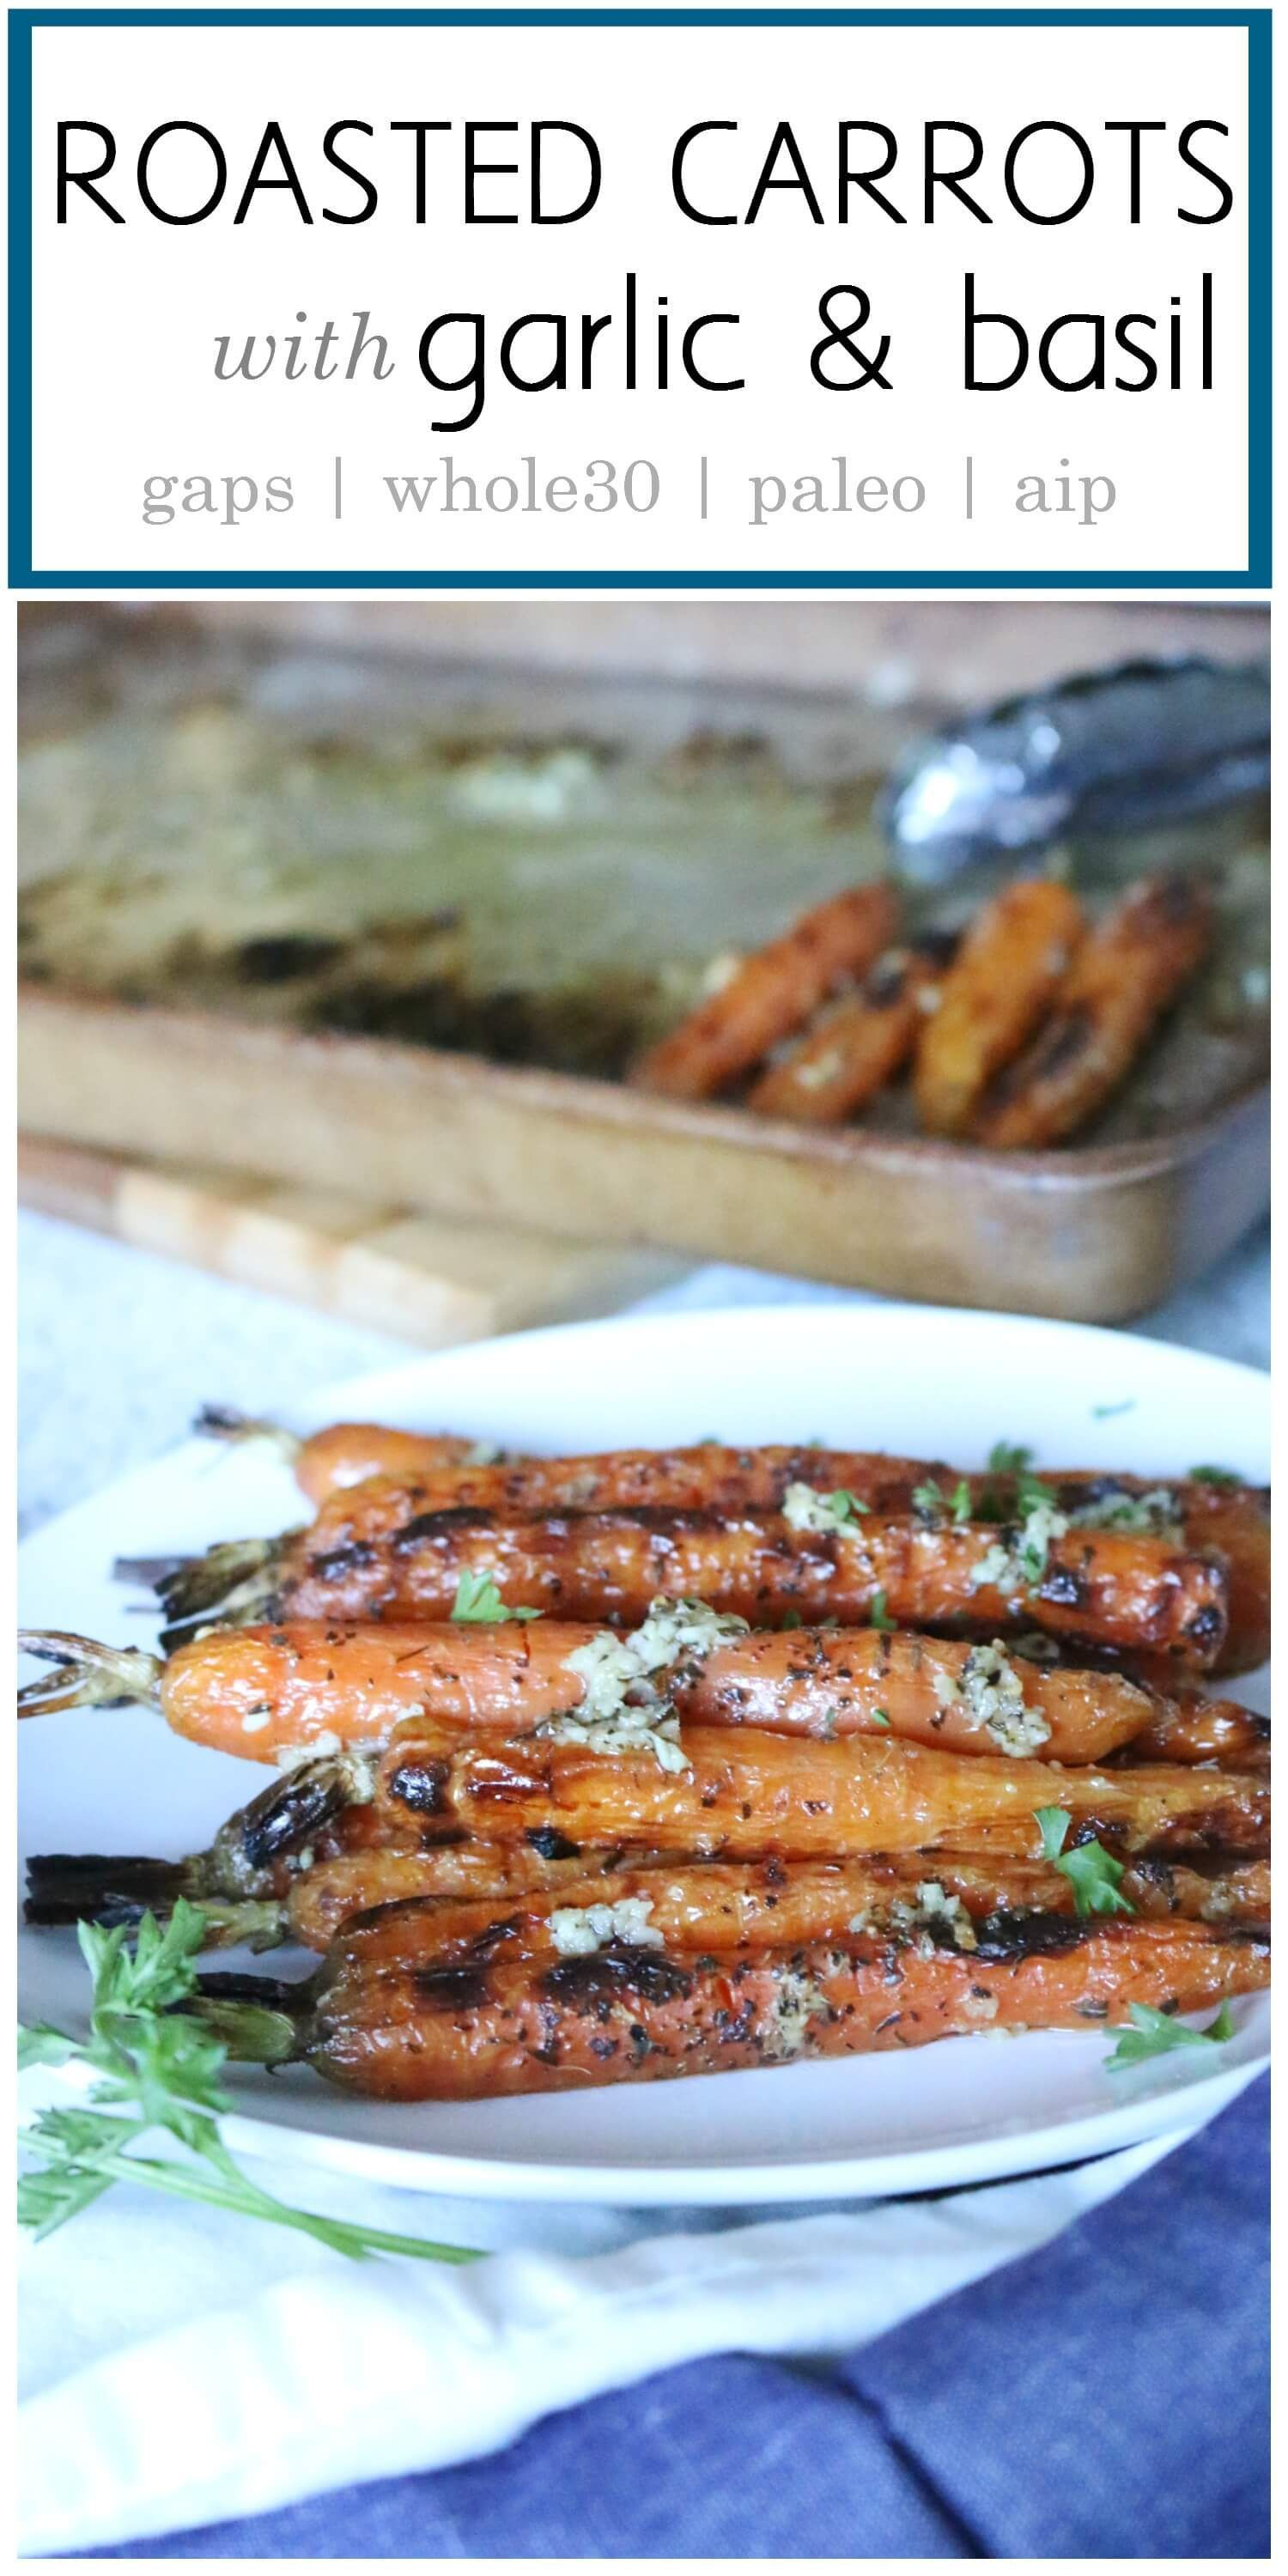 Carrots with Garlic Roasted Carrots with Garlic & Basil - Oven roasted with garlic, basil, and unrefined salt. these roasted carrots make an easy and delicious side dish.  gapsdiet | whole30 | paleo | aip via @preparenourishRoasted Carrots with Garlic & Basil - Oven roasted with garlic, basil, and unrefined salt. these roasted carrots make an easy and delici...